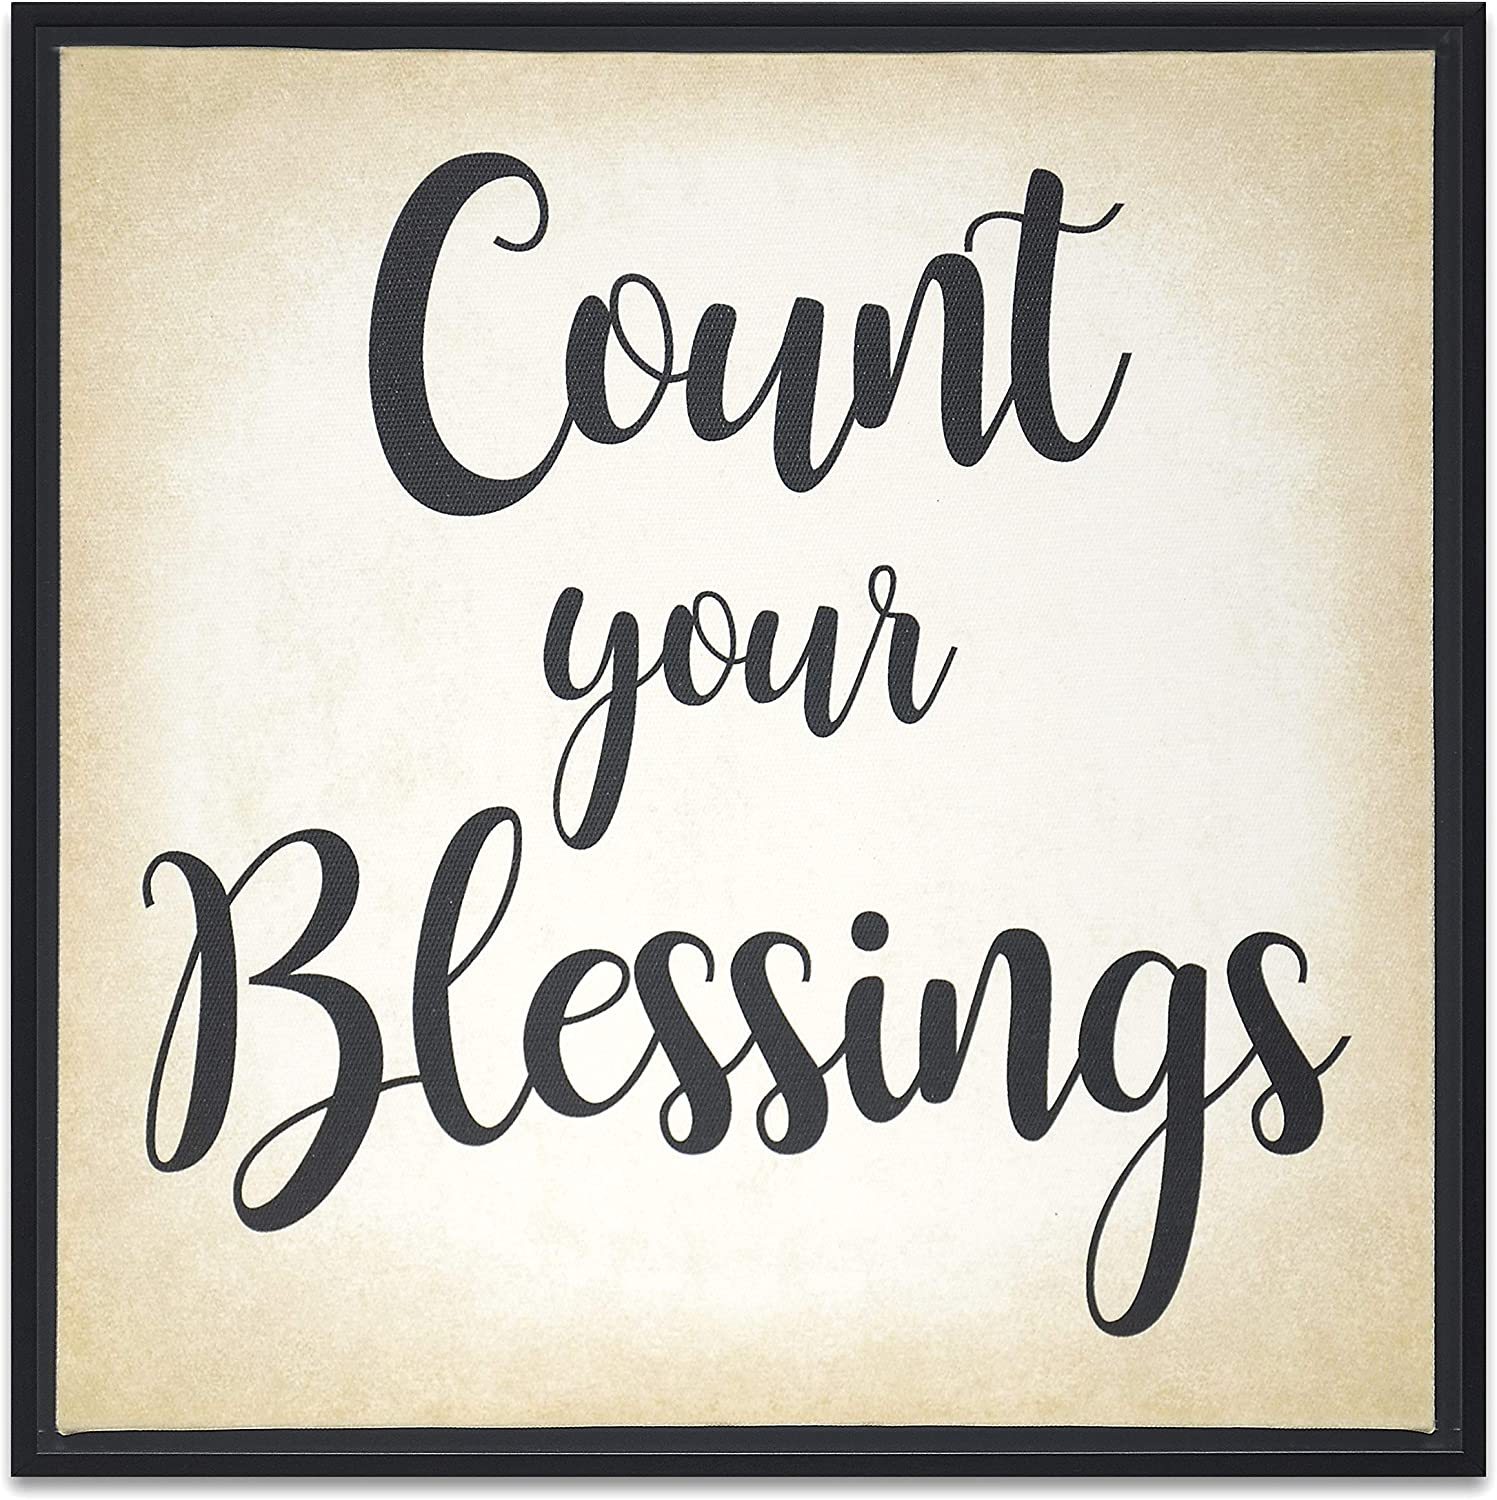 Homekor Count Your Blessings Inspirational Quote - Faith Based Motivational Sign - Framed Art Canvas Print Hanging Wall Decor 12 x 12